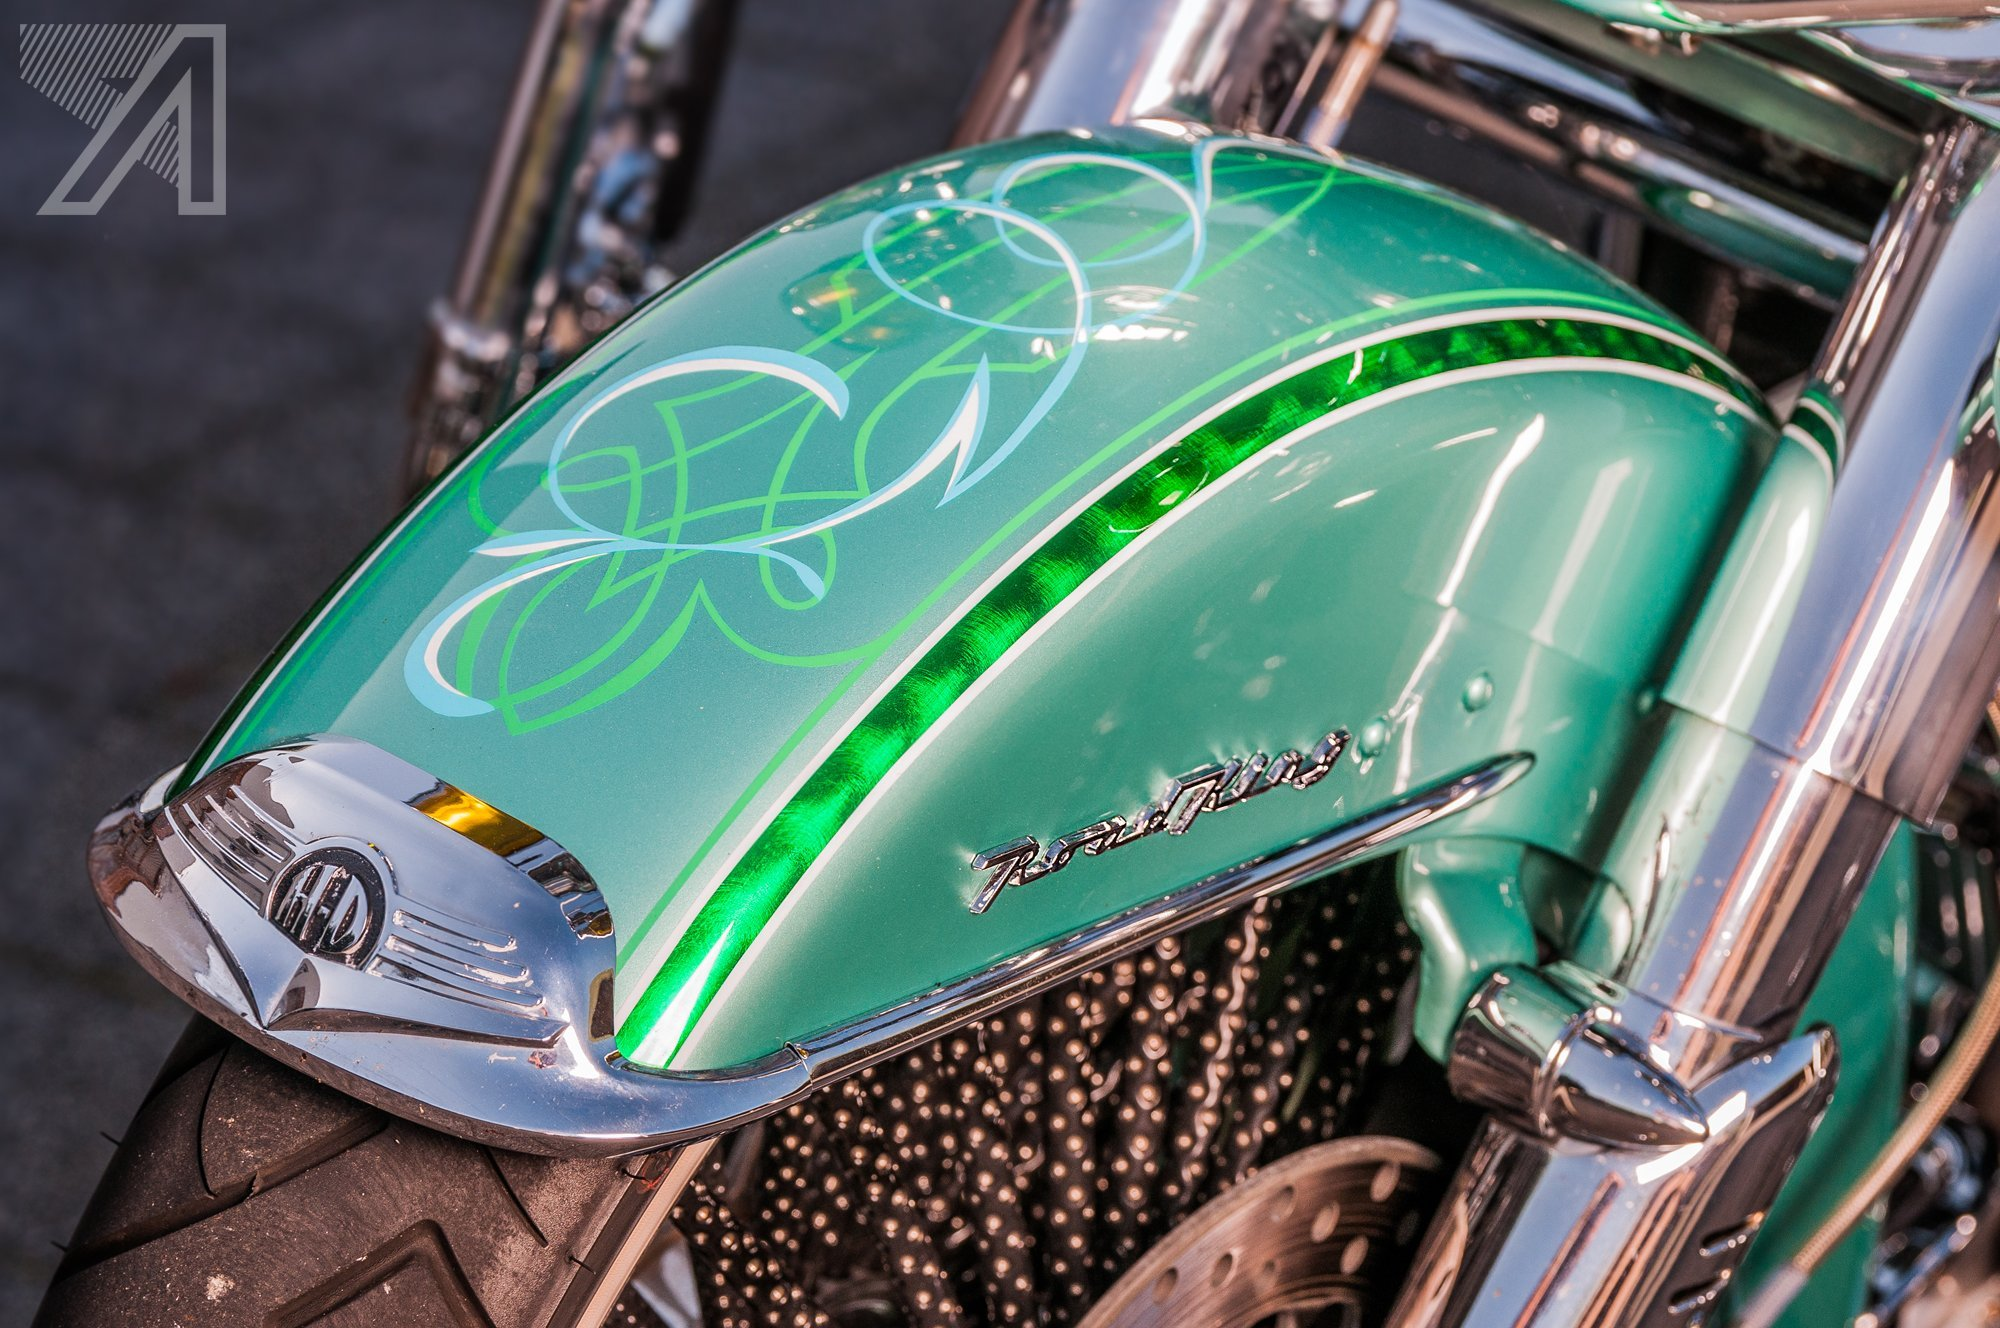 2016-10::1476001614-h-d-road-king-green-candy-leaf-5.jpg